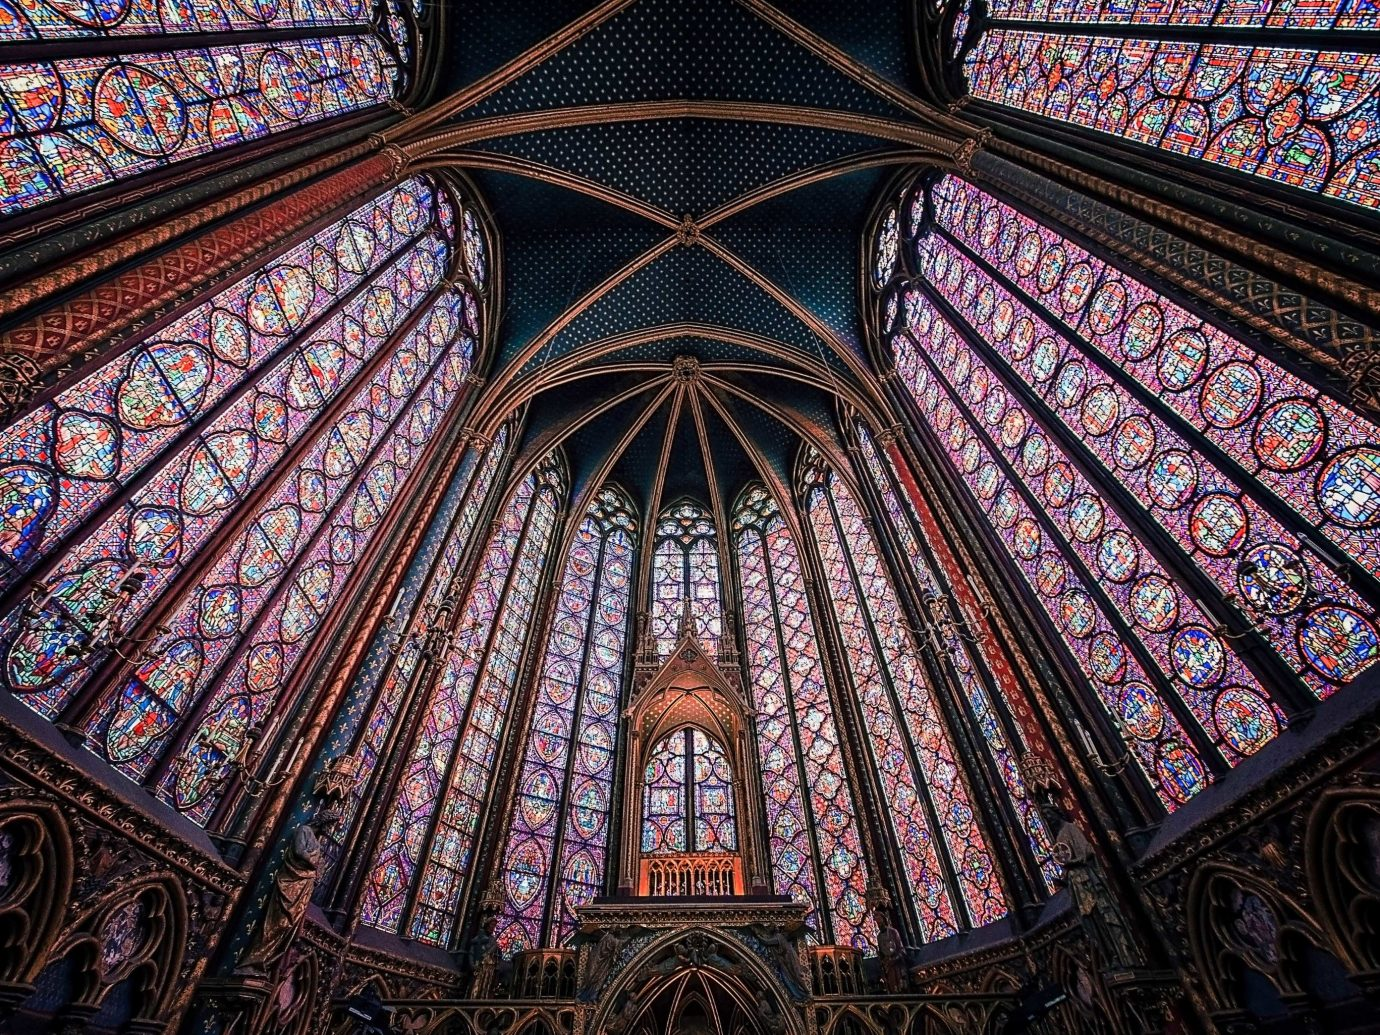 Romance Trip Ideas building stained glass landmark gothic architecture glass chapel cathedral window dome symmetry place of worship material medieval architecture religion byzantine architecture basilica arch daylighting facade